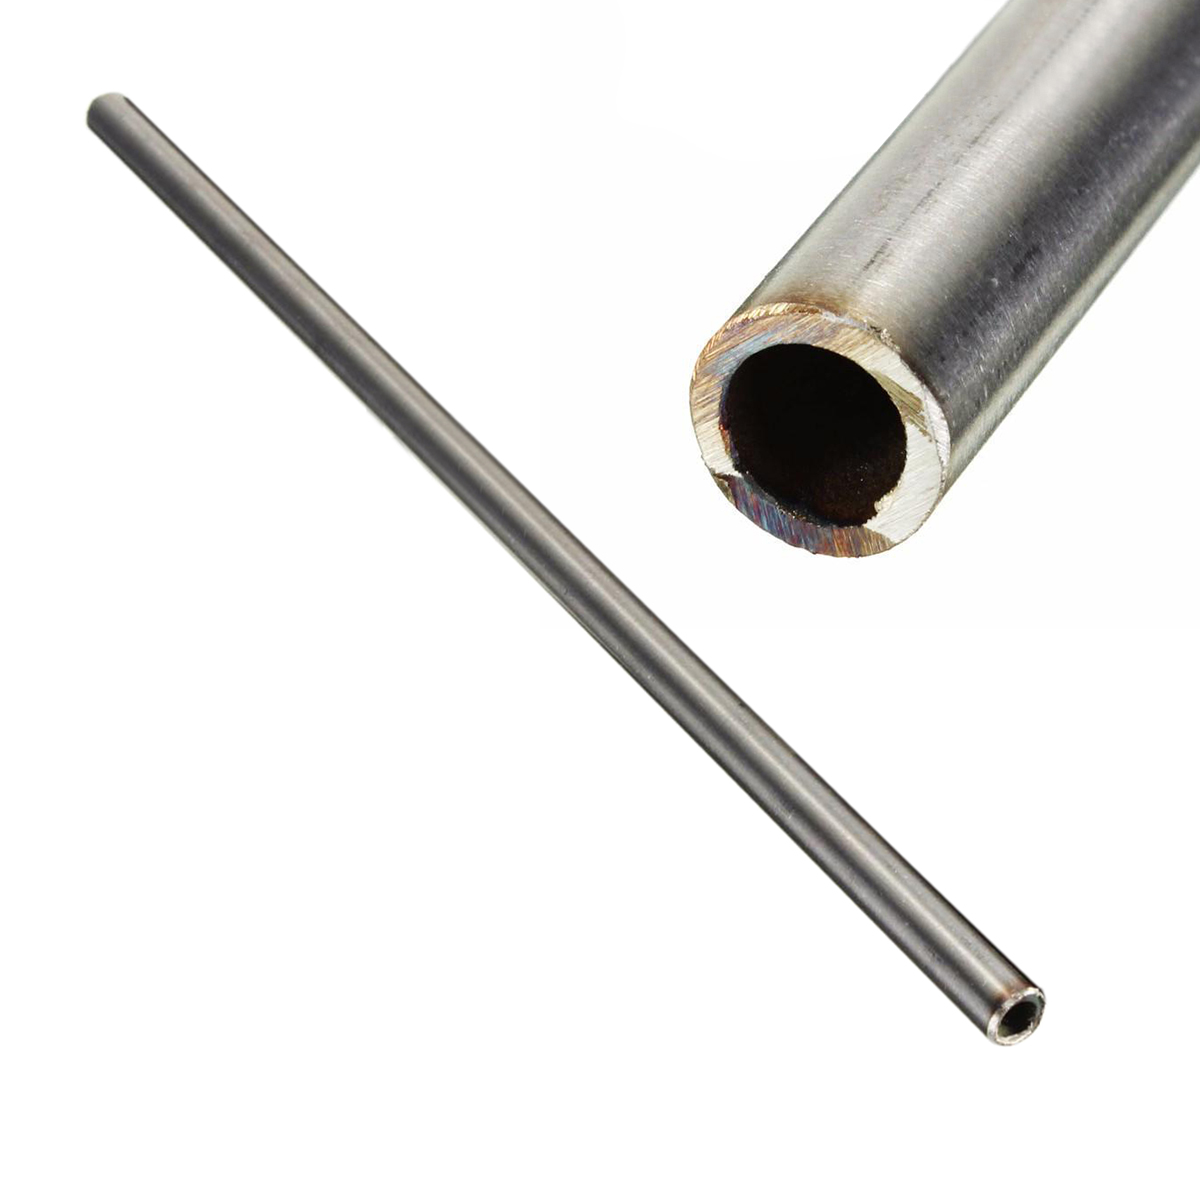 1pc New Silver 304 Stainless Steel Tube Capillary Tube 12mm OD 10mm ID 250mm Length For Home Decoration